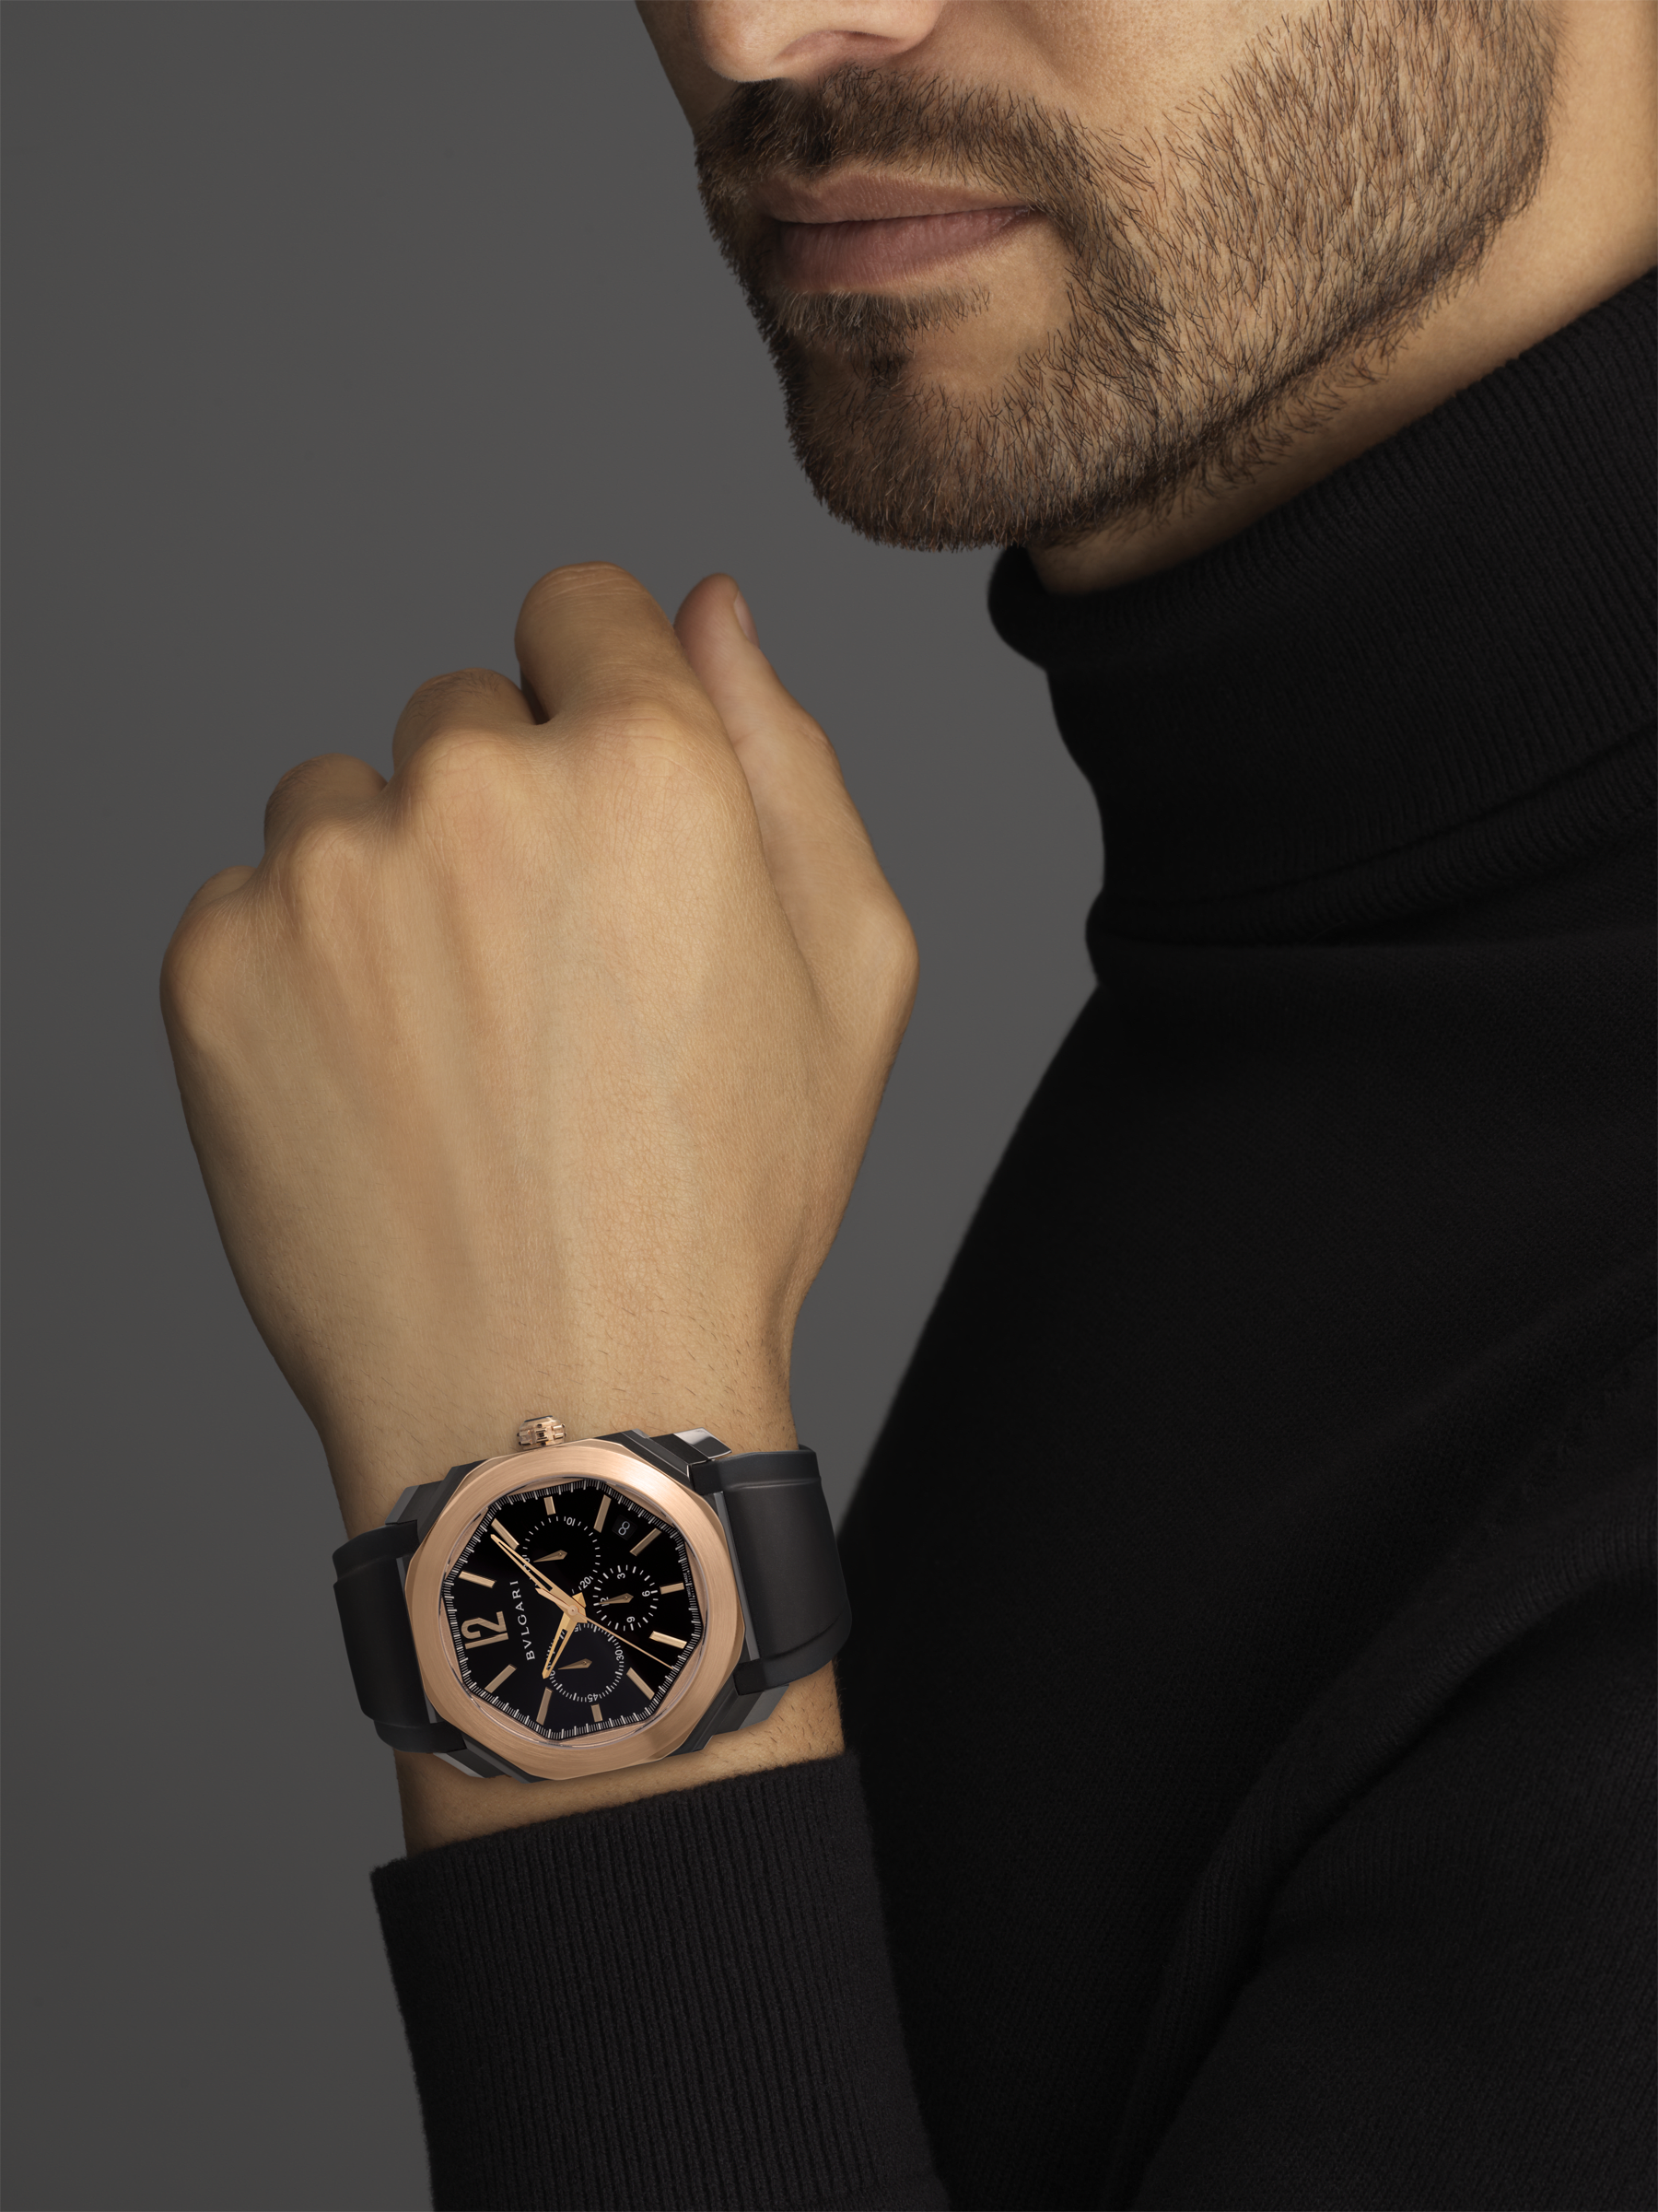 Octo watch with mechanical manufacture movement, high-frequency chronograph, automatic winding and date, stainless steel case treated with black Diamond Like Carbon, 18 kt rose gold bezel, black lacquered dial and black rubber bracelet. 102488 image 5